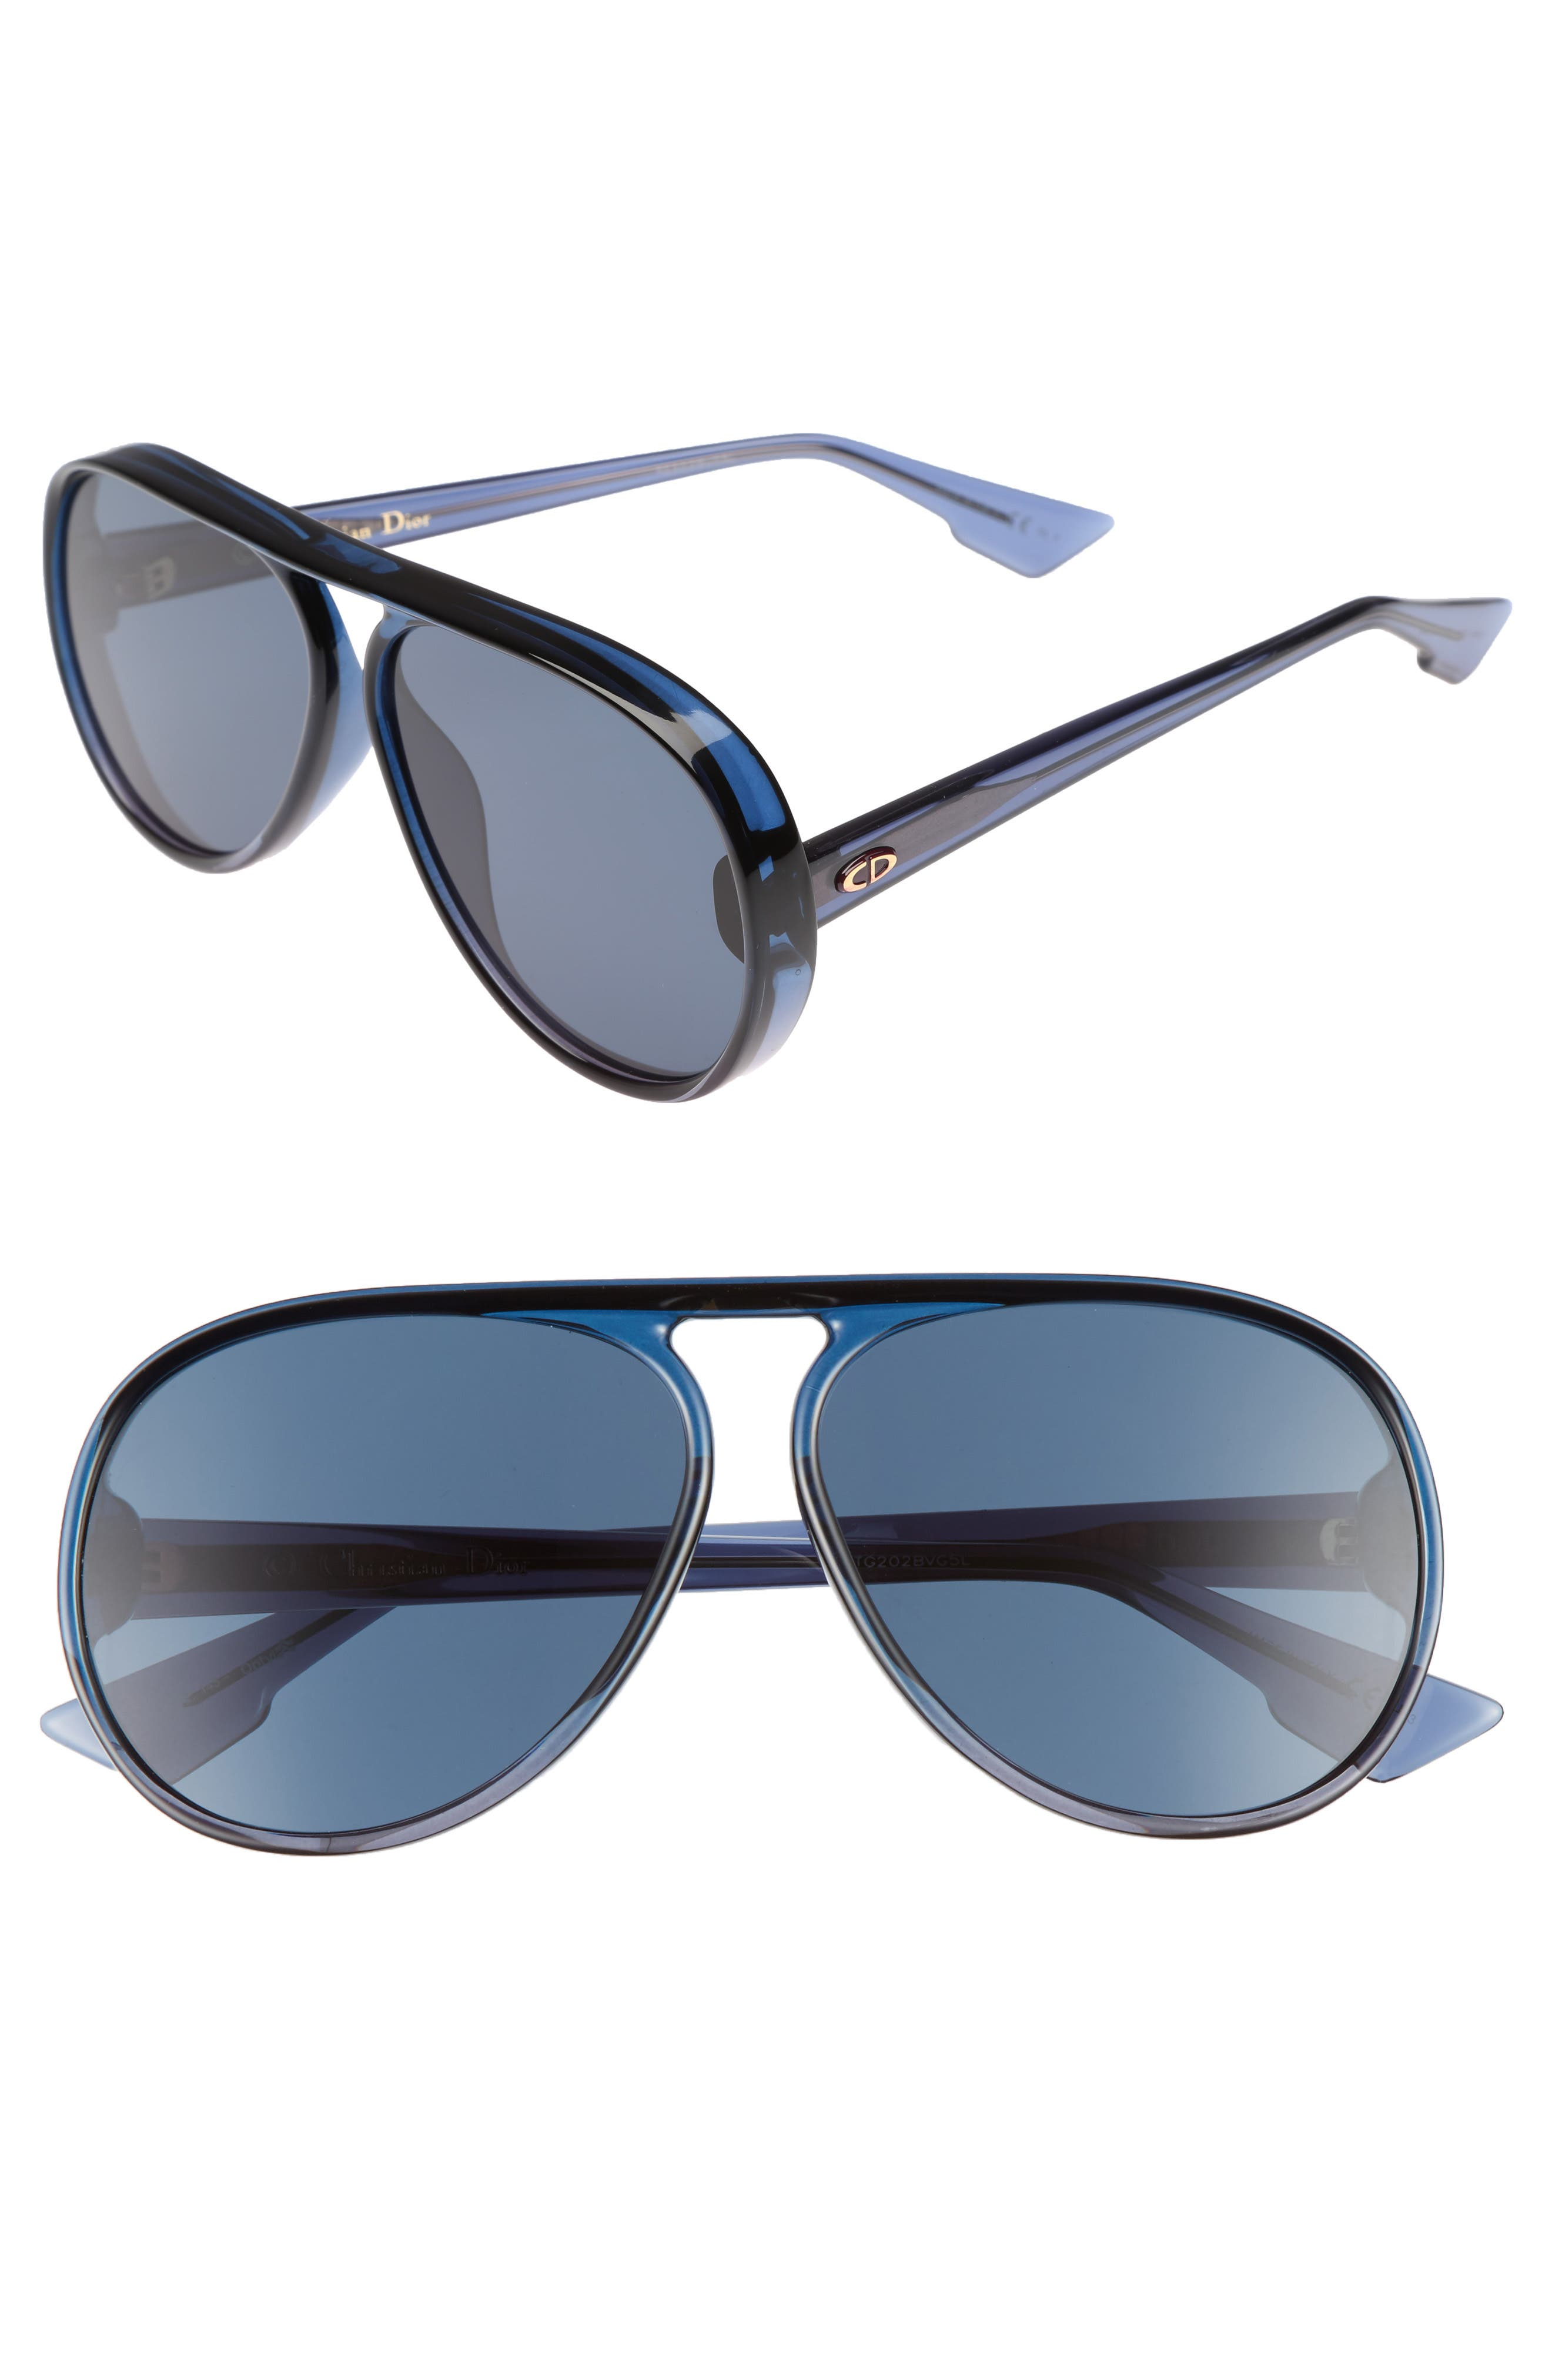 Main Image - Dior Lia 62mm Oversize Aviator Sunglasses